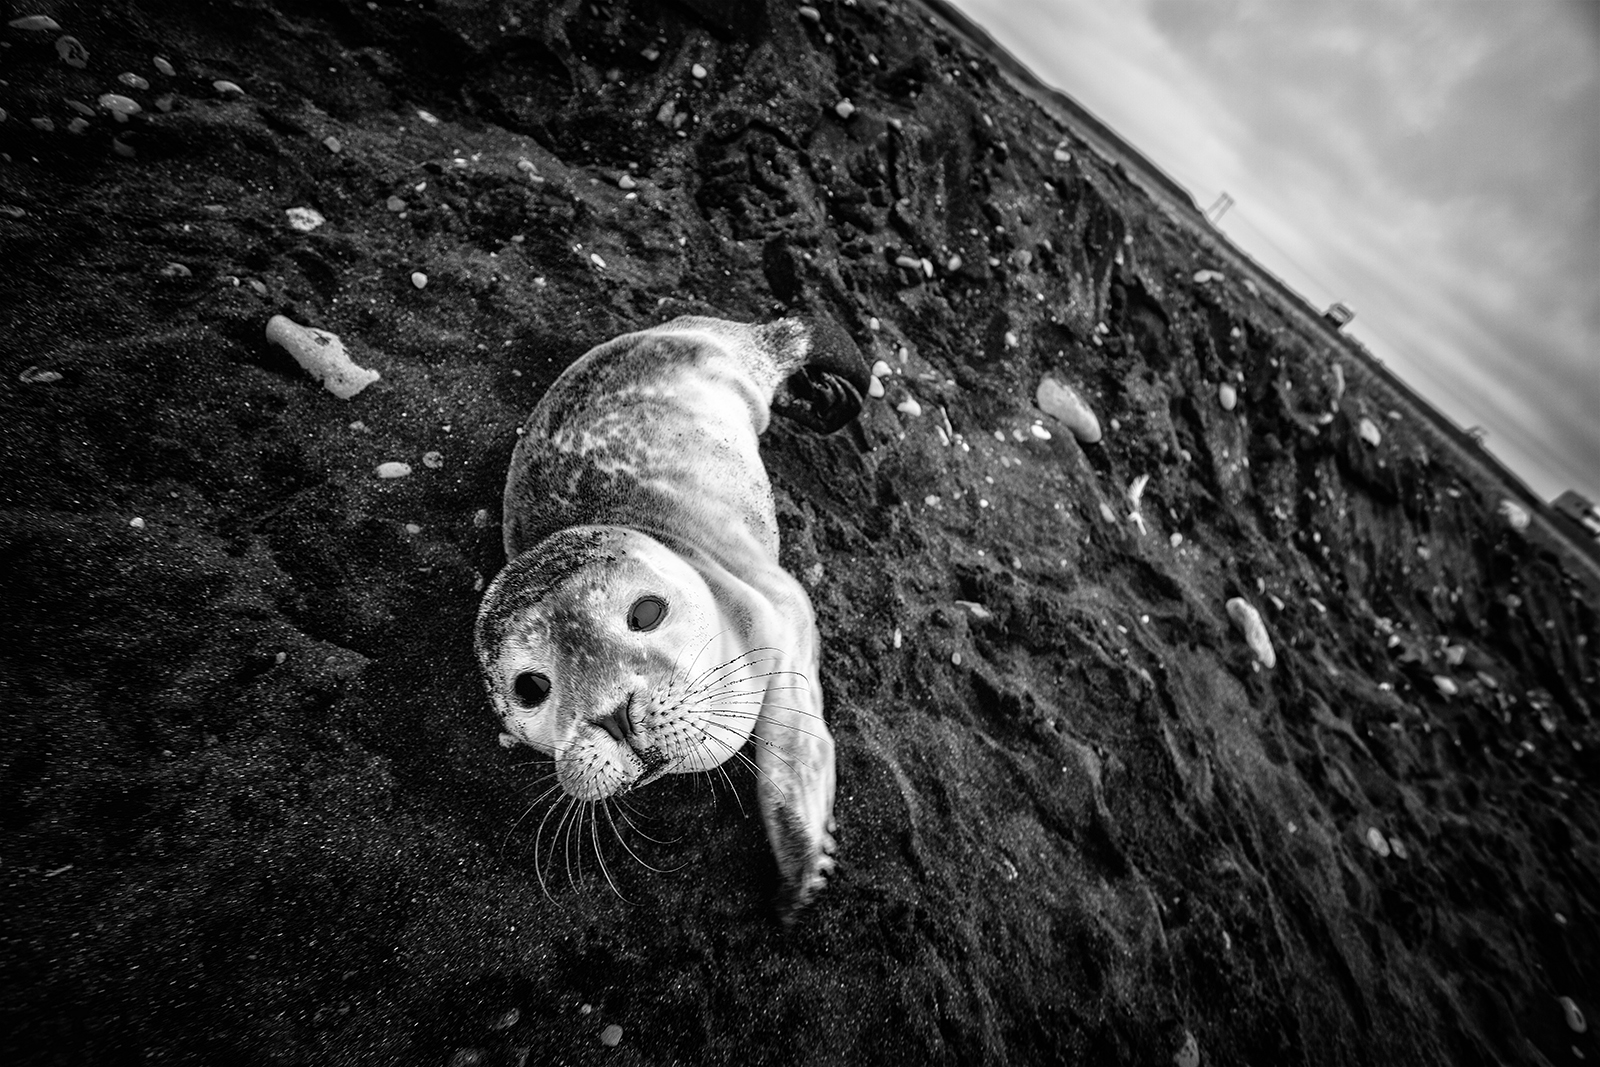 jokulsarlon, iceland, seal, baby seal, black and white, animal, B&W